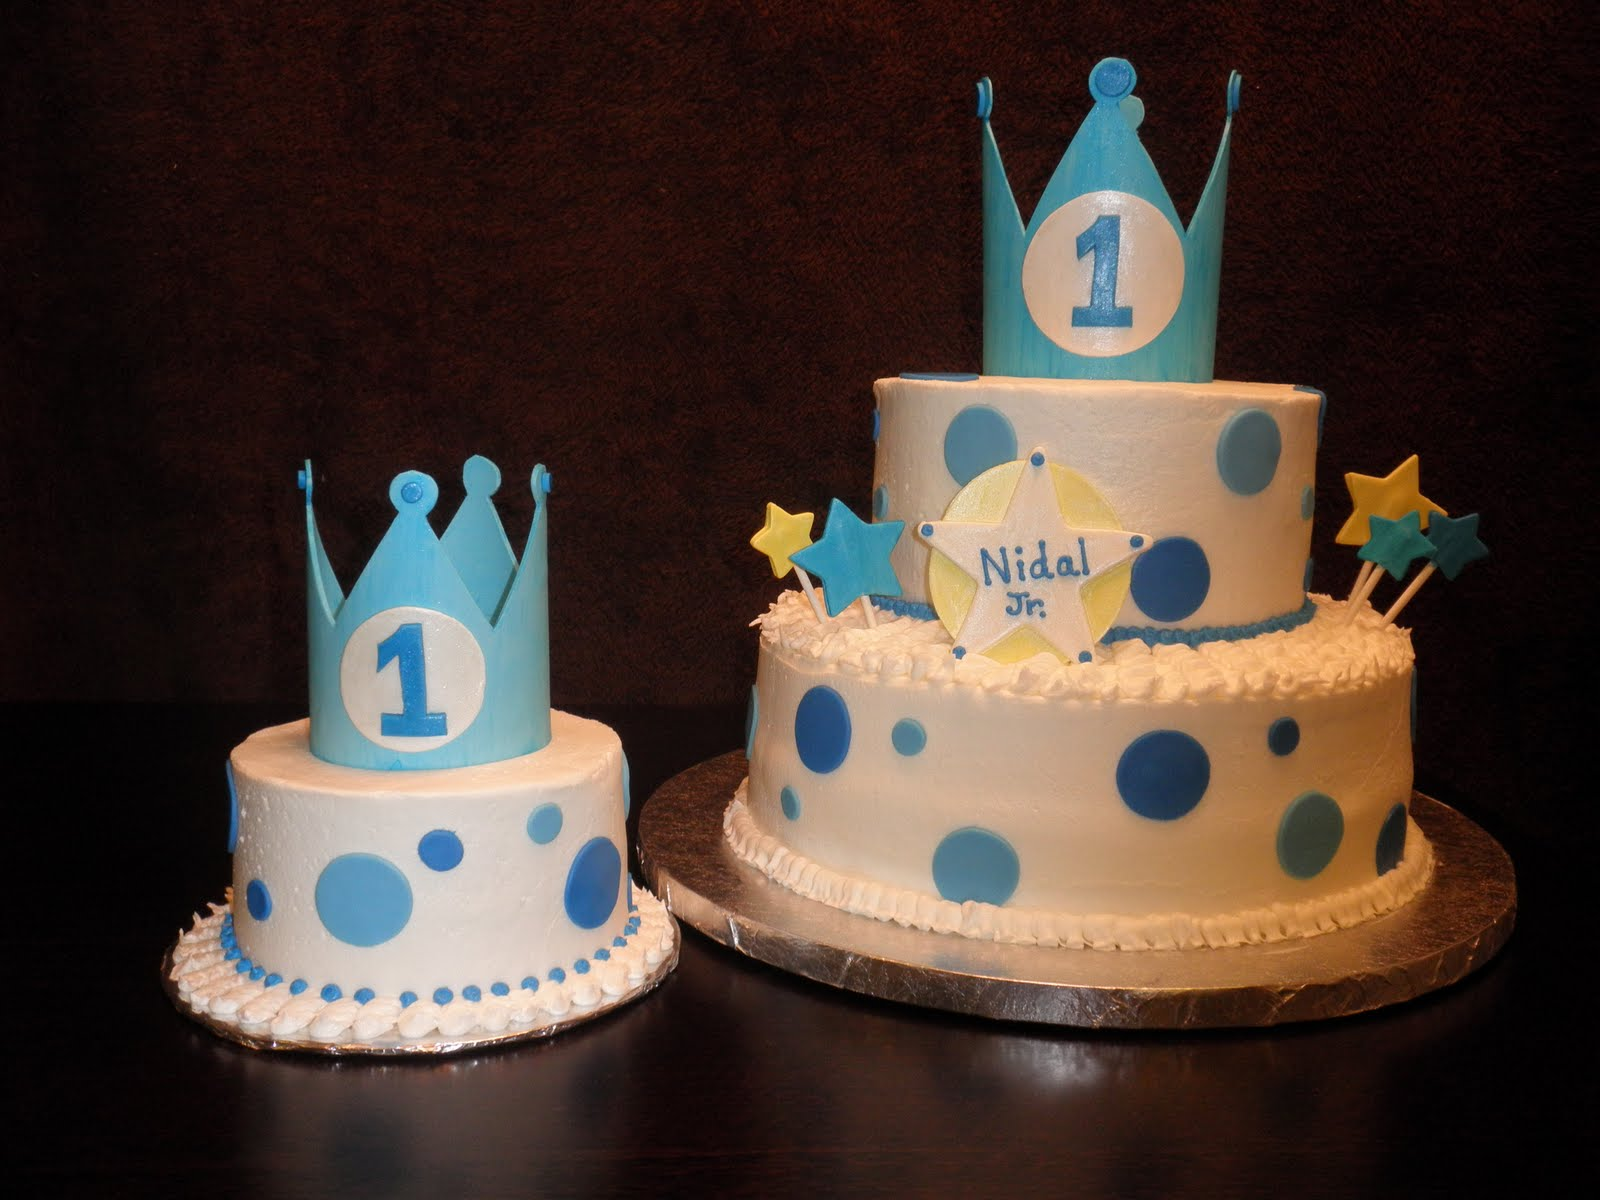 Bday Cake Designs For Baby Boy : Blissful Bites By Brandy: Baby s 1st Birthday